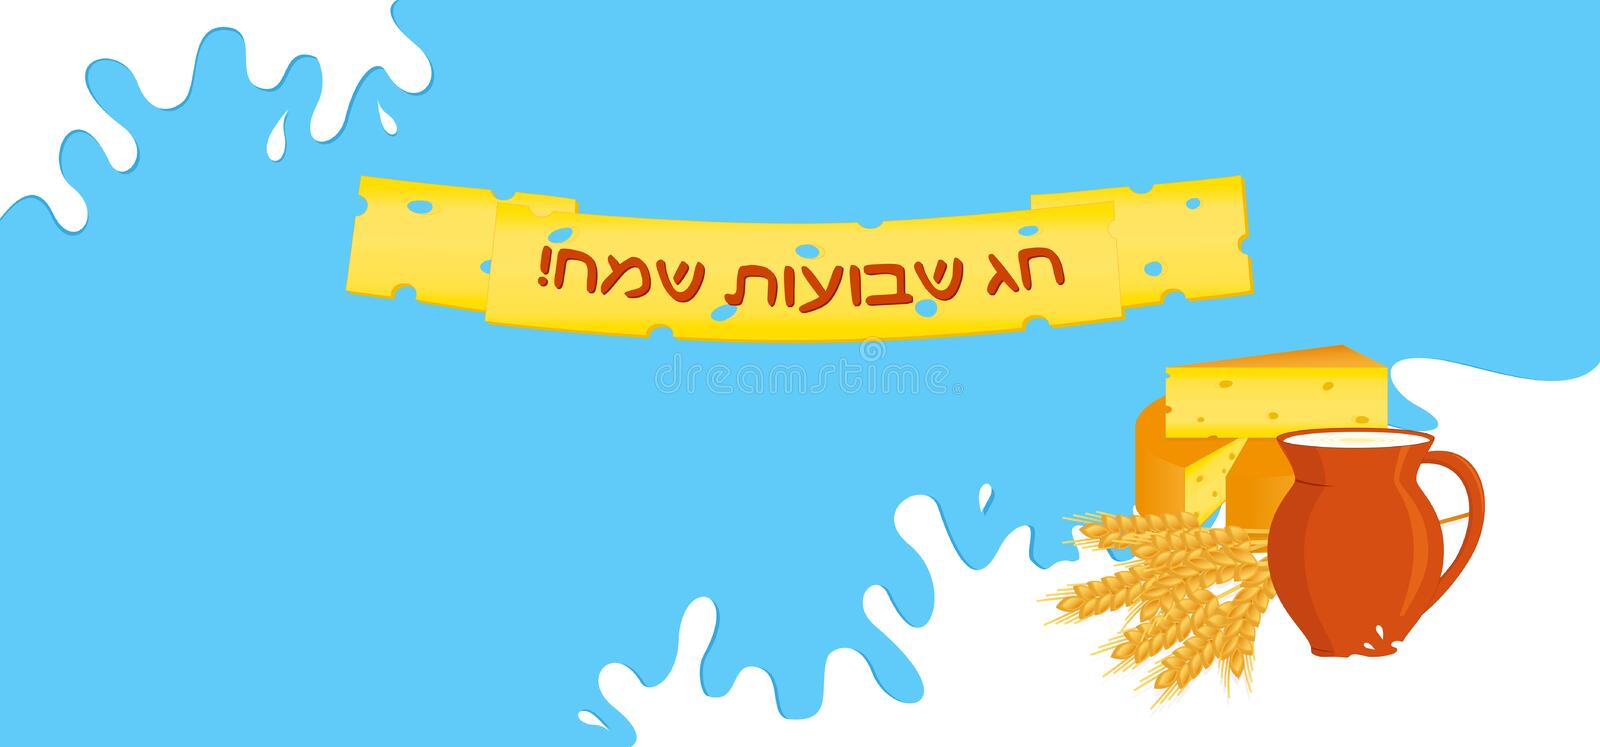 Jewish holiday of Shavuot, greeting banner. Jewish holiday of Shavuot, banner with milk jug, cheese and wheat ears on spilled milk, greeting inscription hebrew vector illustration